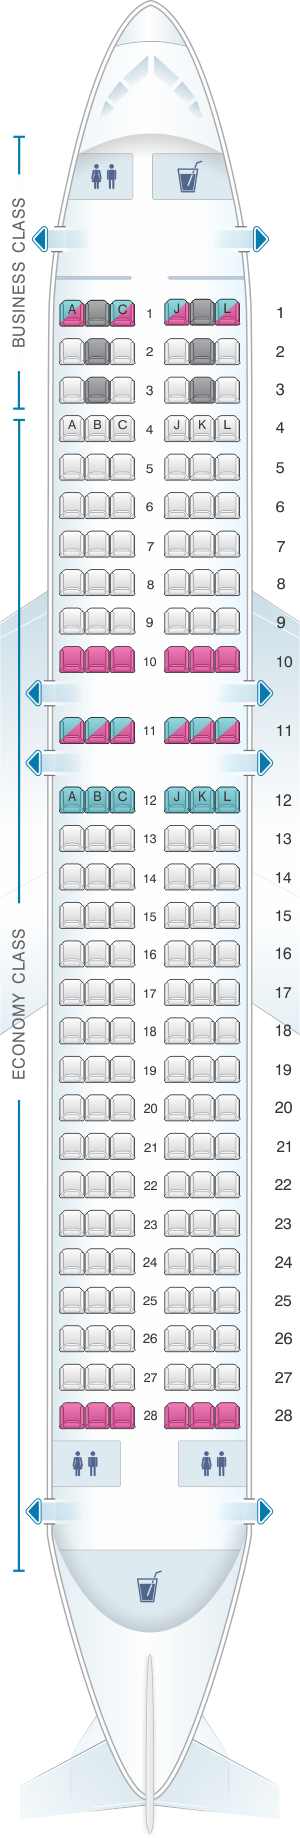 Seat map for LATAM Airlines Airbus A320 200 V2